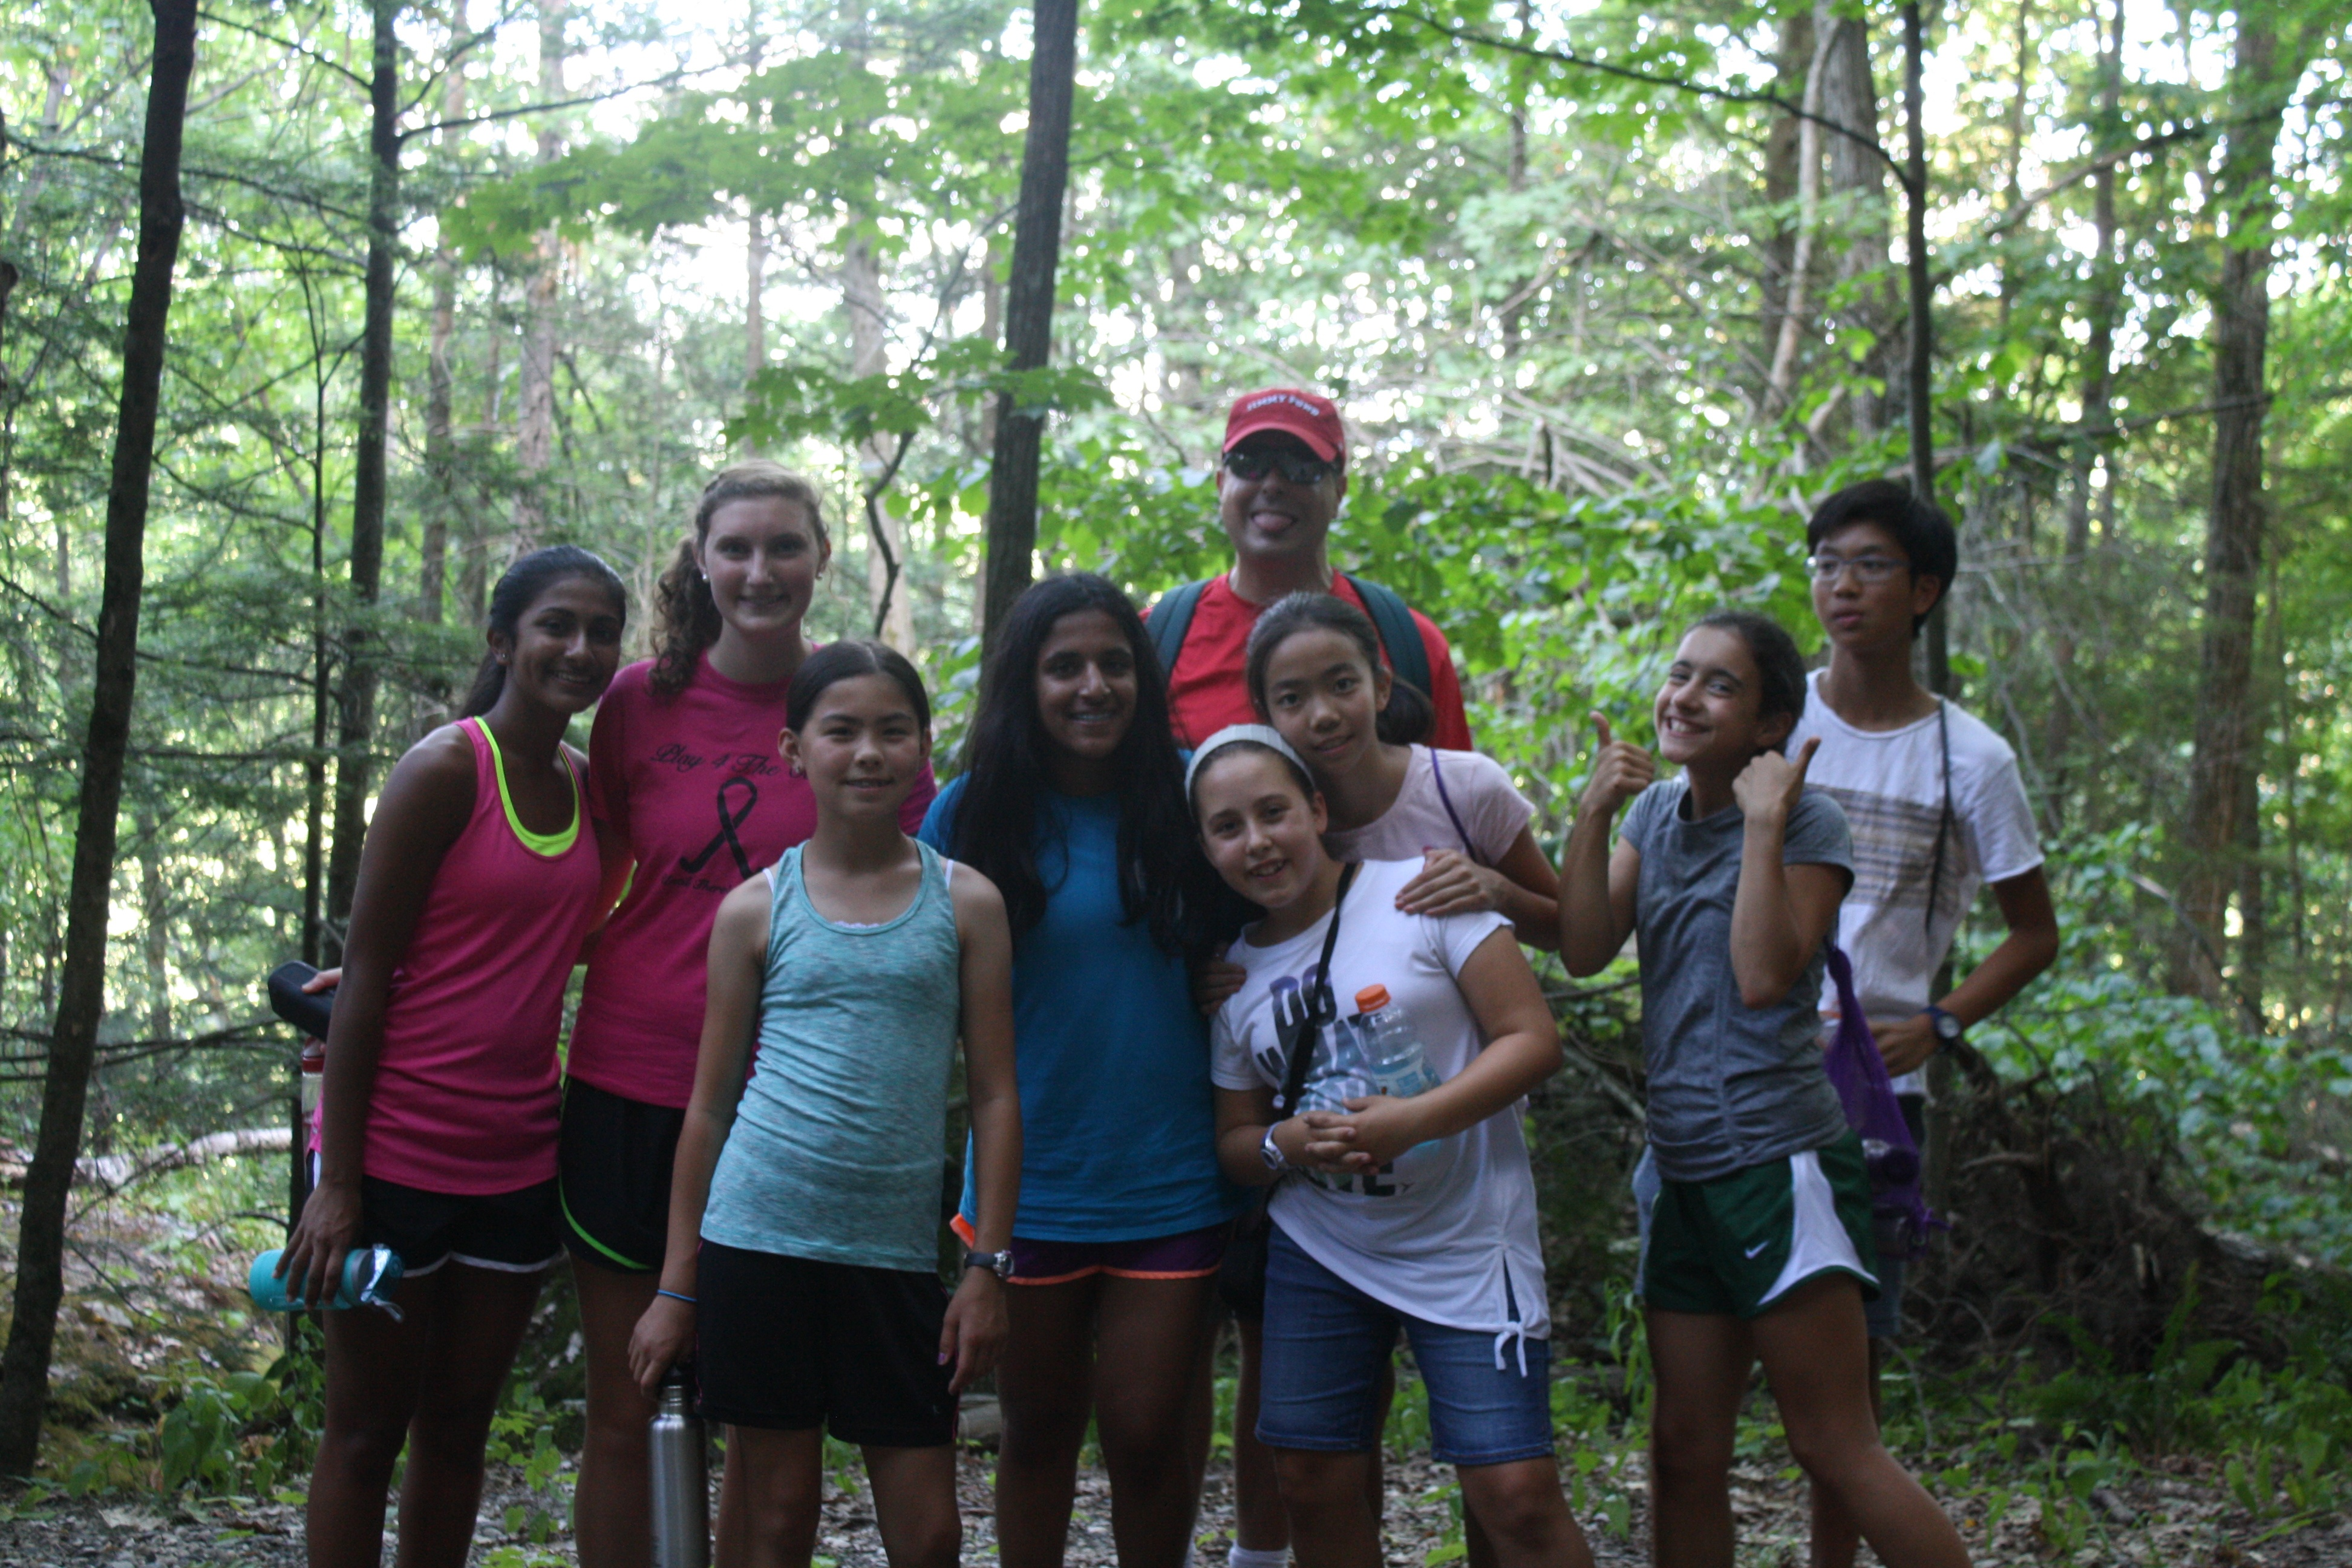 The Hiking Co-Curricular visits a Massachusetts State Reservation